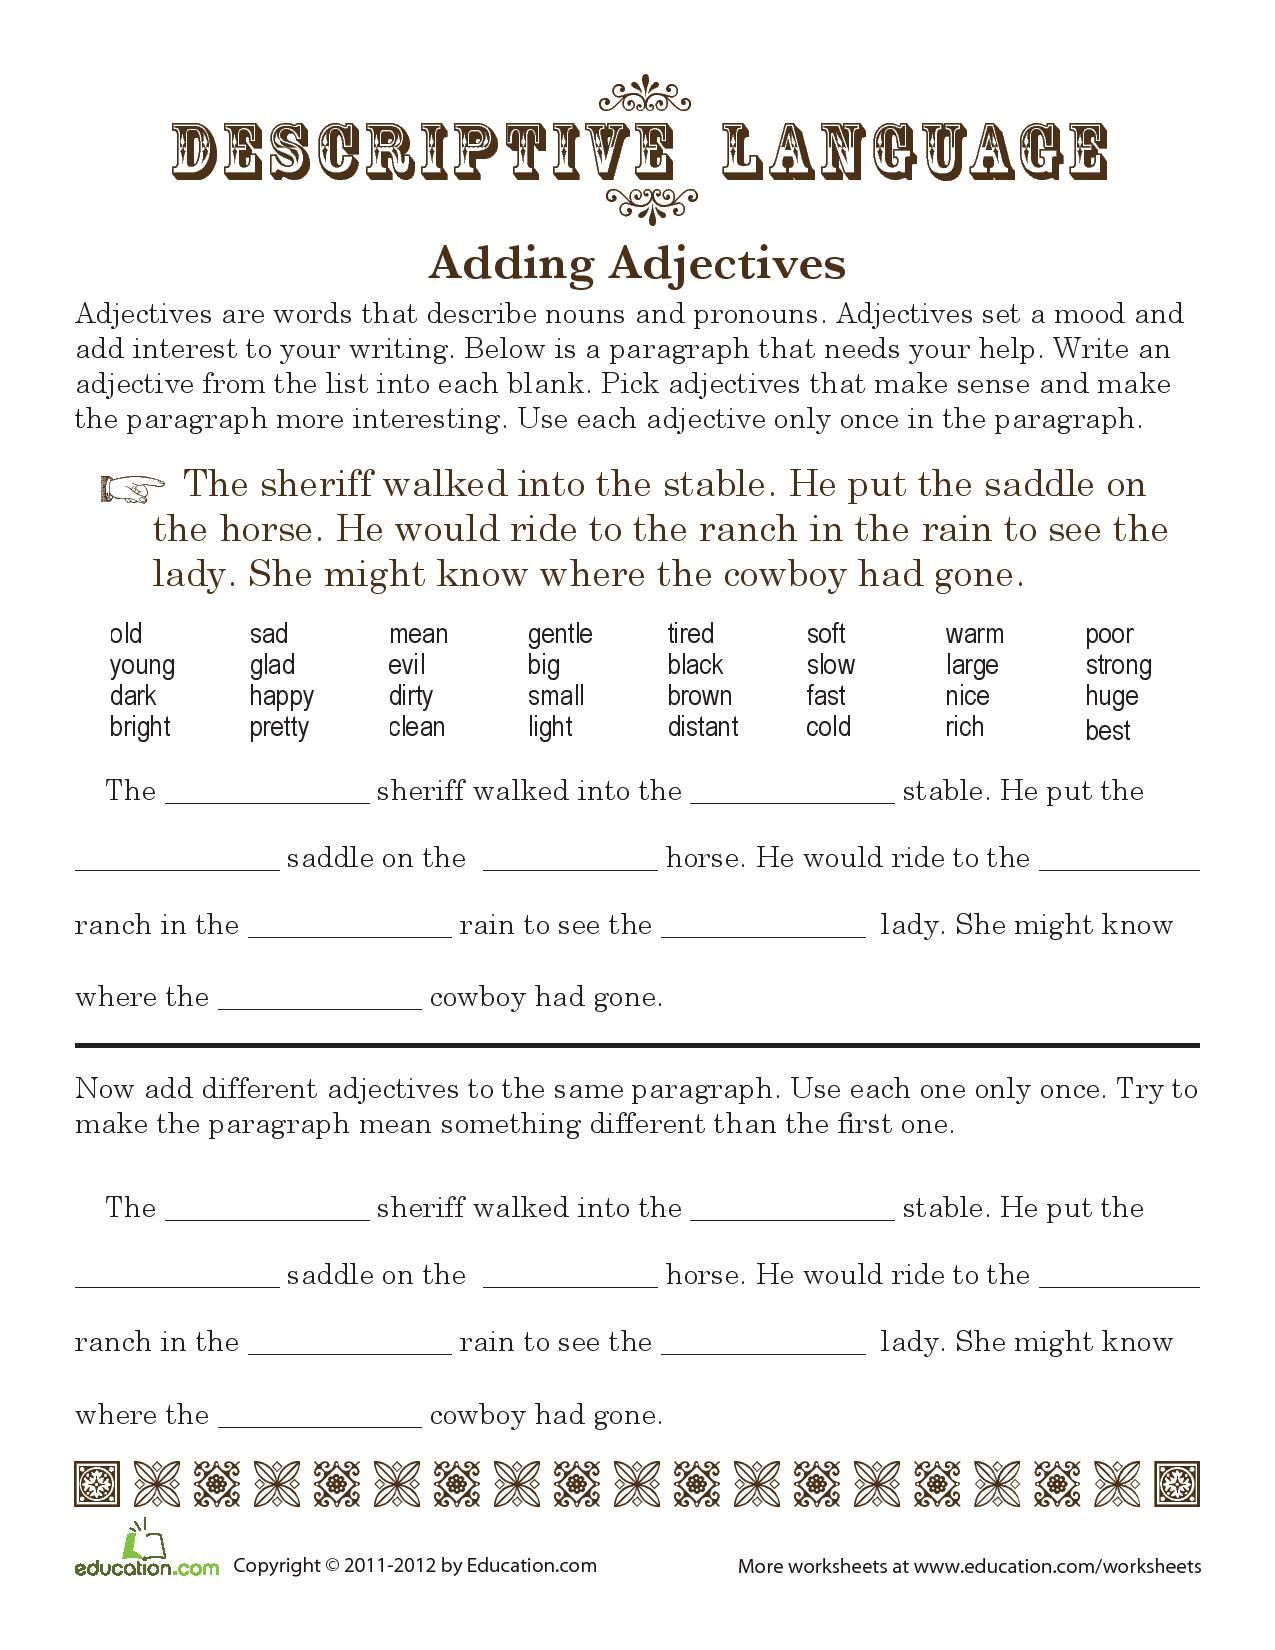 Fun Adjective Worksheets Volume Fun Adjective Exercises in addition  furthermore Descriptive Adjectives  It's All in the Details   Worksheet besides Time to saddle up some adjectives  Descriptive language adds in addition Adjectives Worksheets   Regular Adjectives Worksheets likewise parative And Superlative Degrees Of Adjective Adjectives also Descriptive And Limiting Adjectives Worksheets Exercise 3 Copy All additionally More And Most Adjectives Worksheets About This Worksheet  parative together with Small 1st Grade Adjective Worksheets Kindergarten Worksheets Ideas together with  likewise Adjectives Worksheets Worksheet Descriptive For Grade 3 also Adjectives Worksheets As Well And Amazing Grade 3 – kinchen co furthermore Adjectives Worksheets For Grade 2 Adjectives Worksheets For Grade 2 likewise Easter Adjectives   Free 2nd Grade Grammar Worksheet   JumpStart furthermore Adjective Worksheets together with Adjectives Worksheets   Regular Adjectives Worksheets. on descriptive adjectives worksheet 4th grade